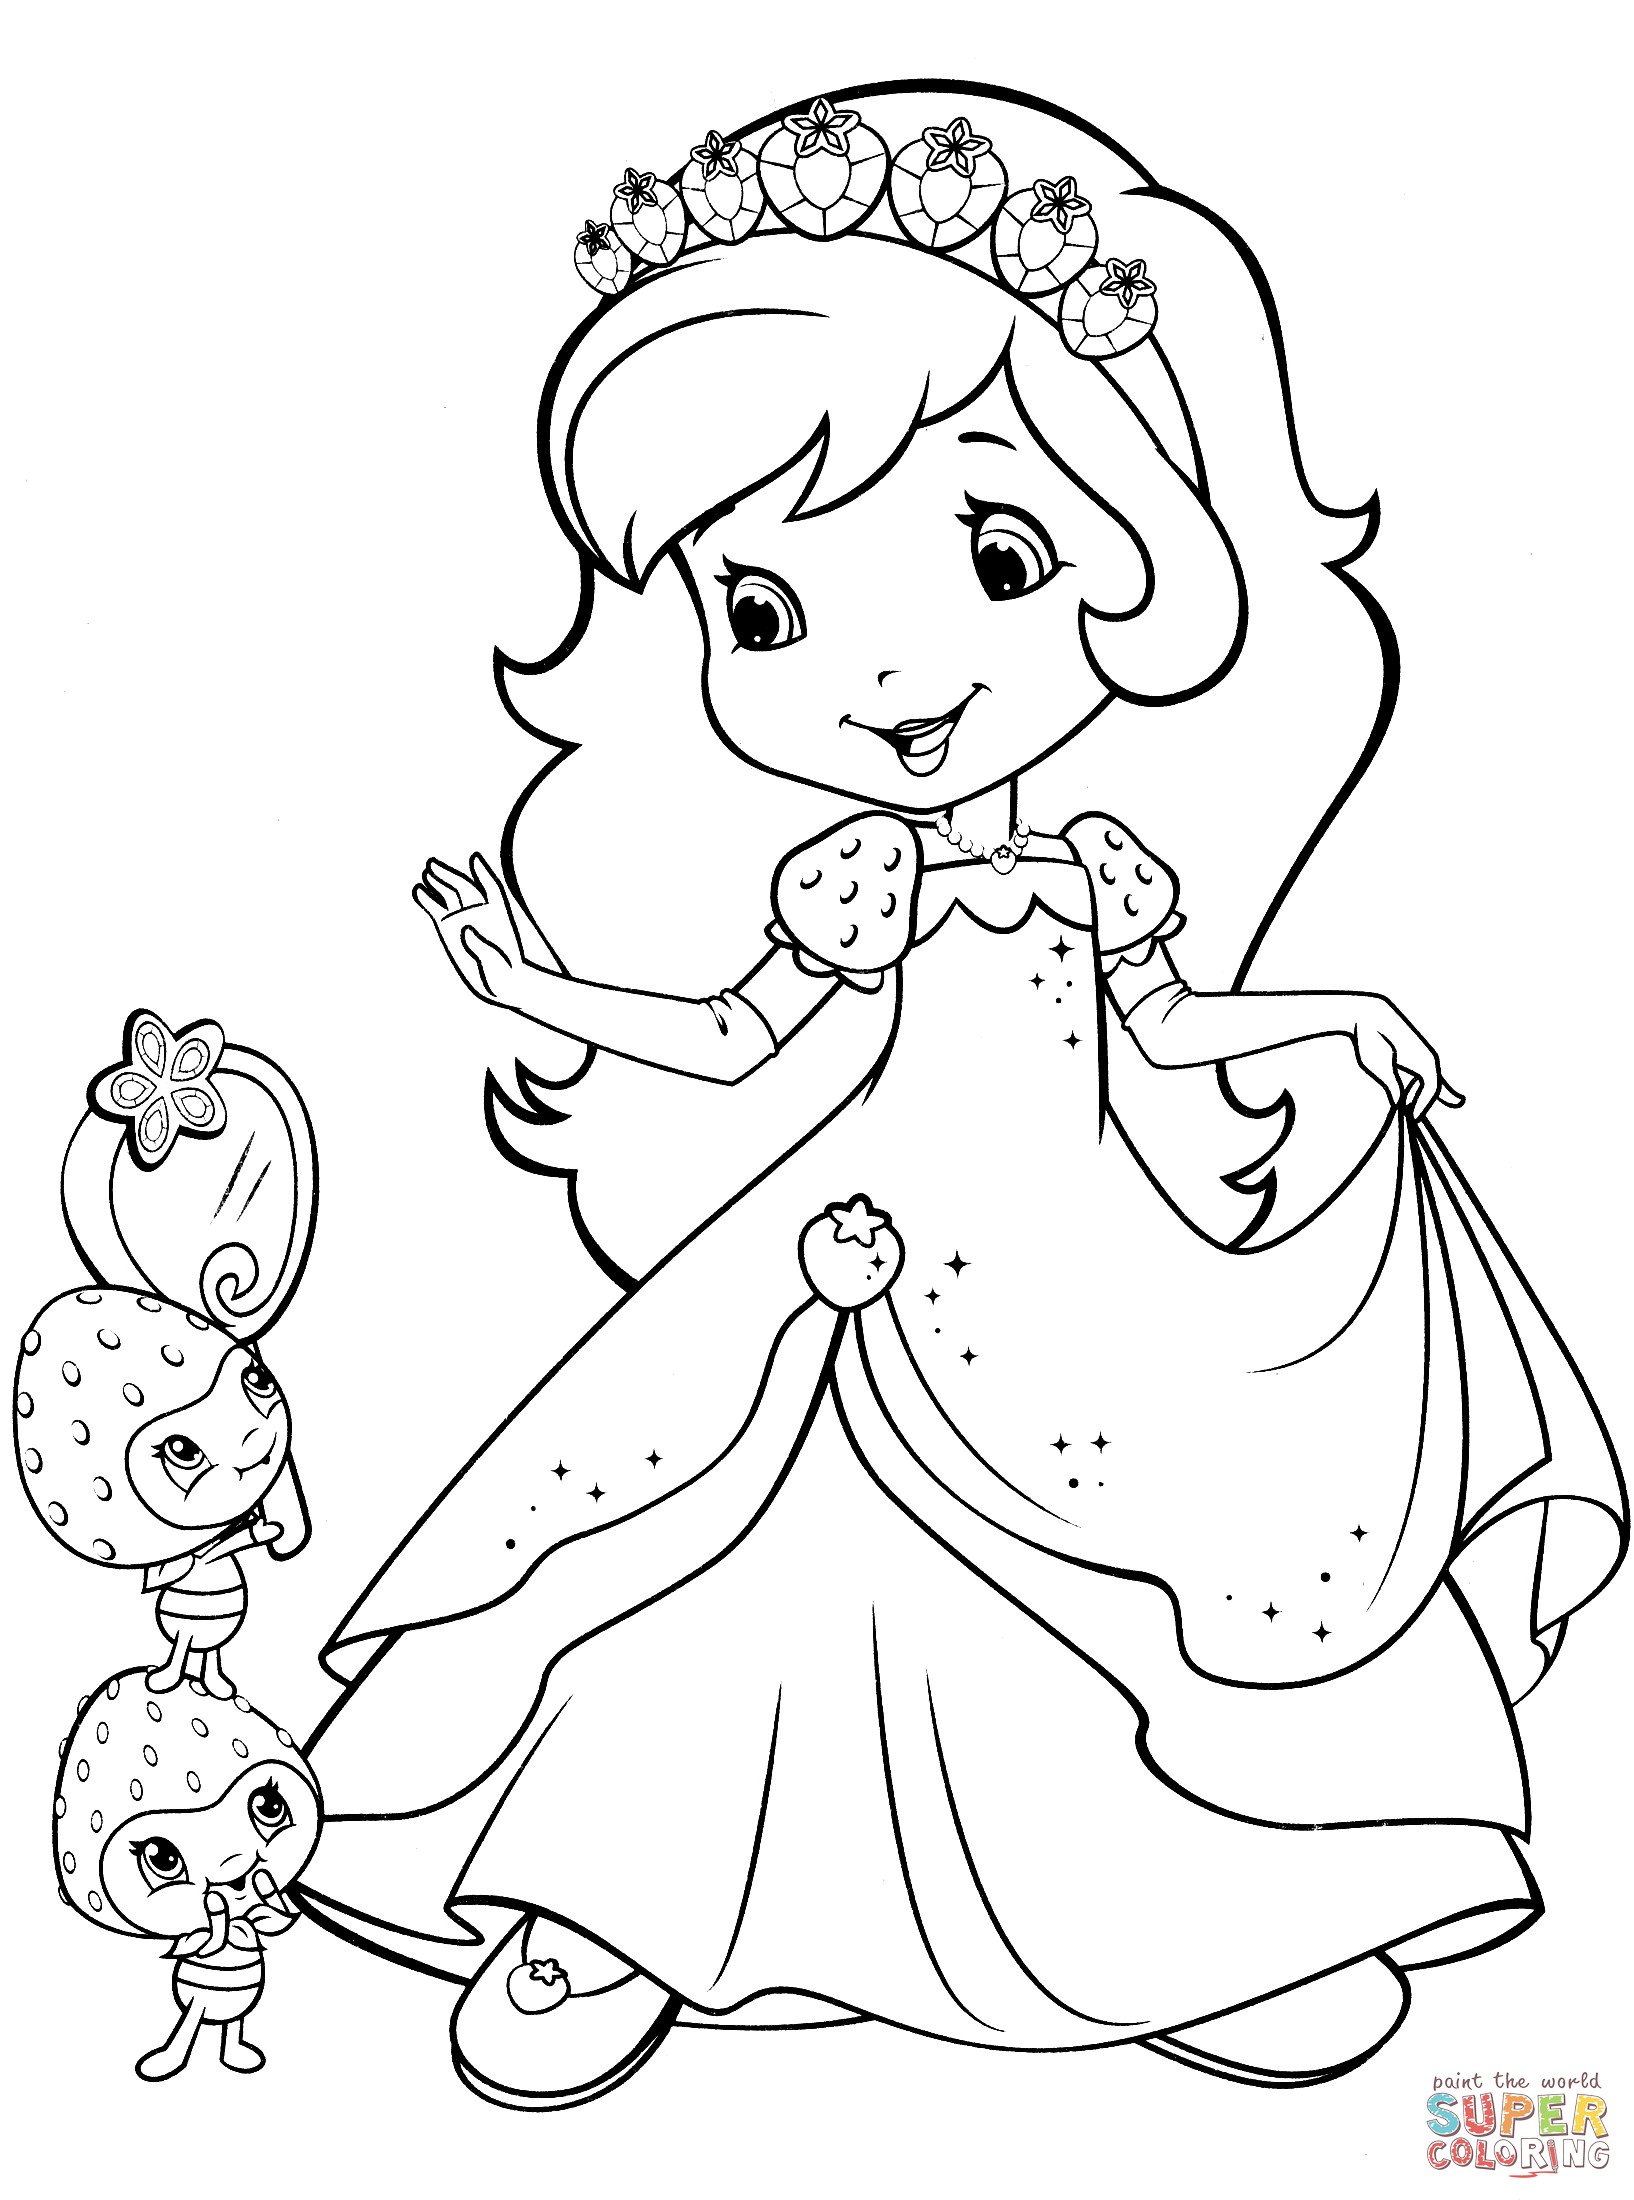 Coloring Sheets For Girls Strawberry Shortcake  Strawberry Shortcake and Berrykins coloring page